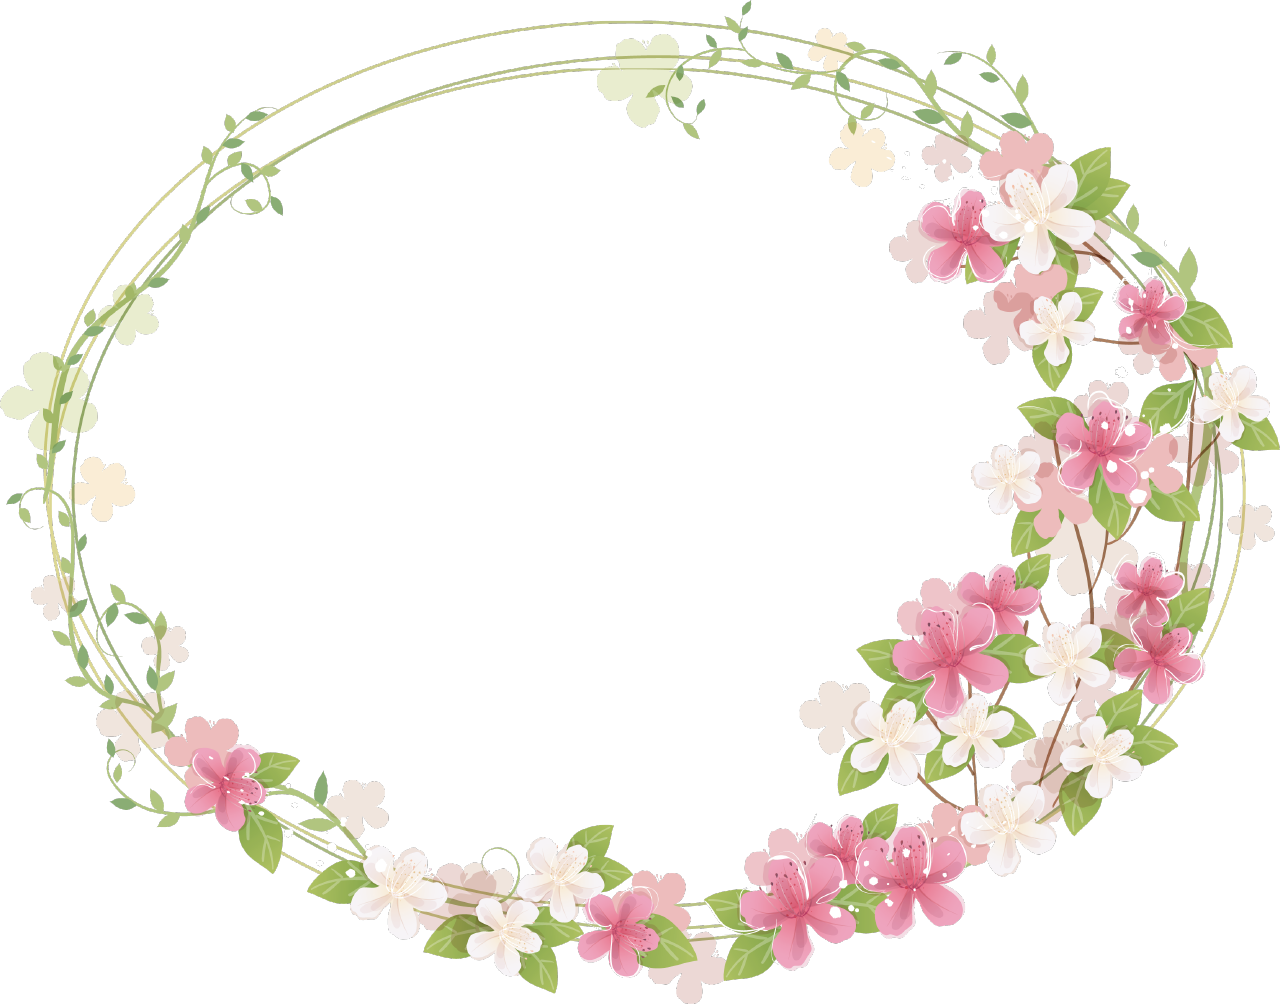 Woodland clipart wreath. Shapes design google search